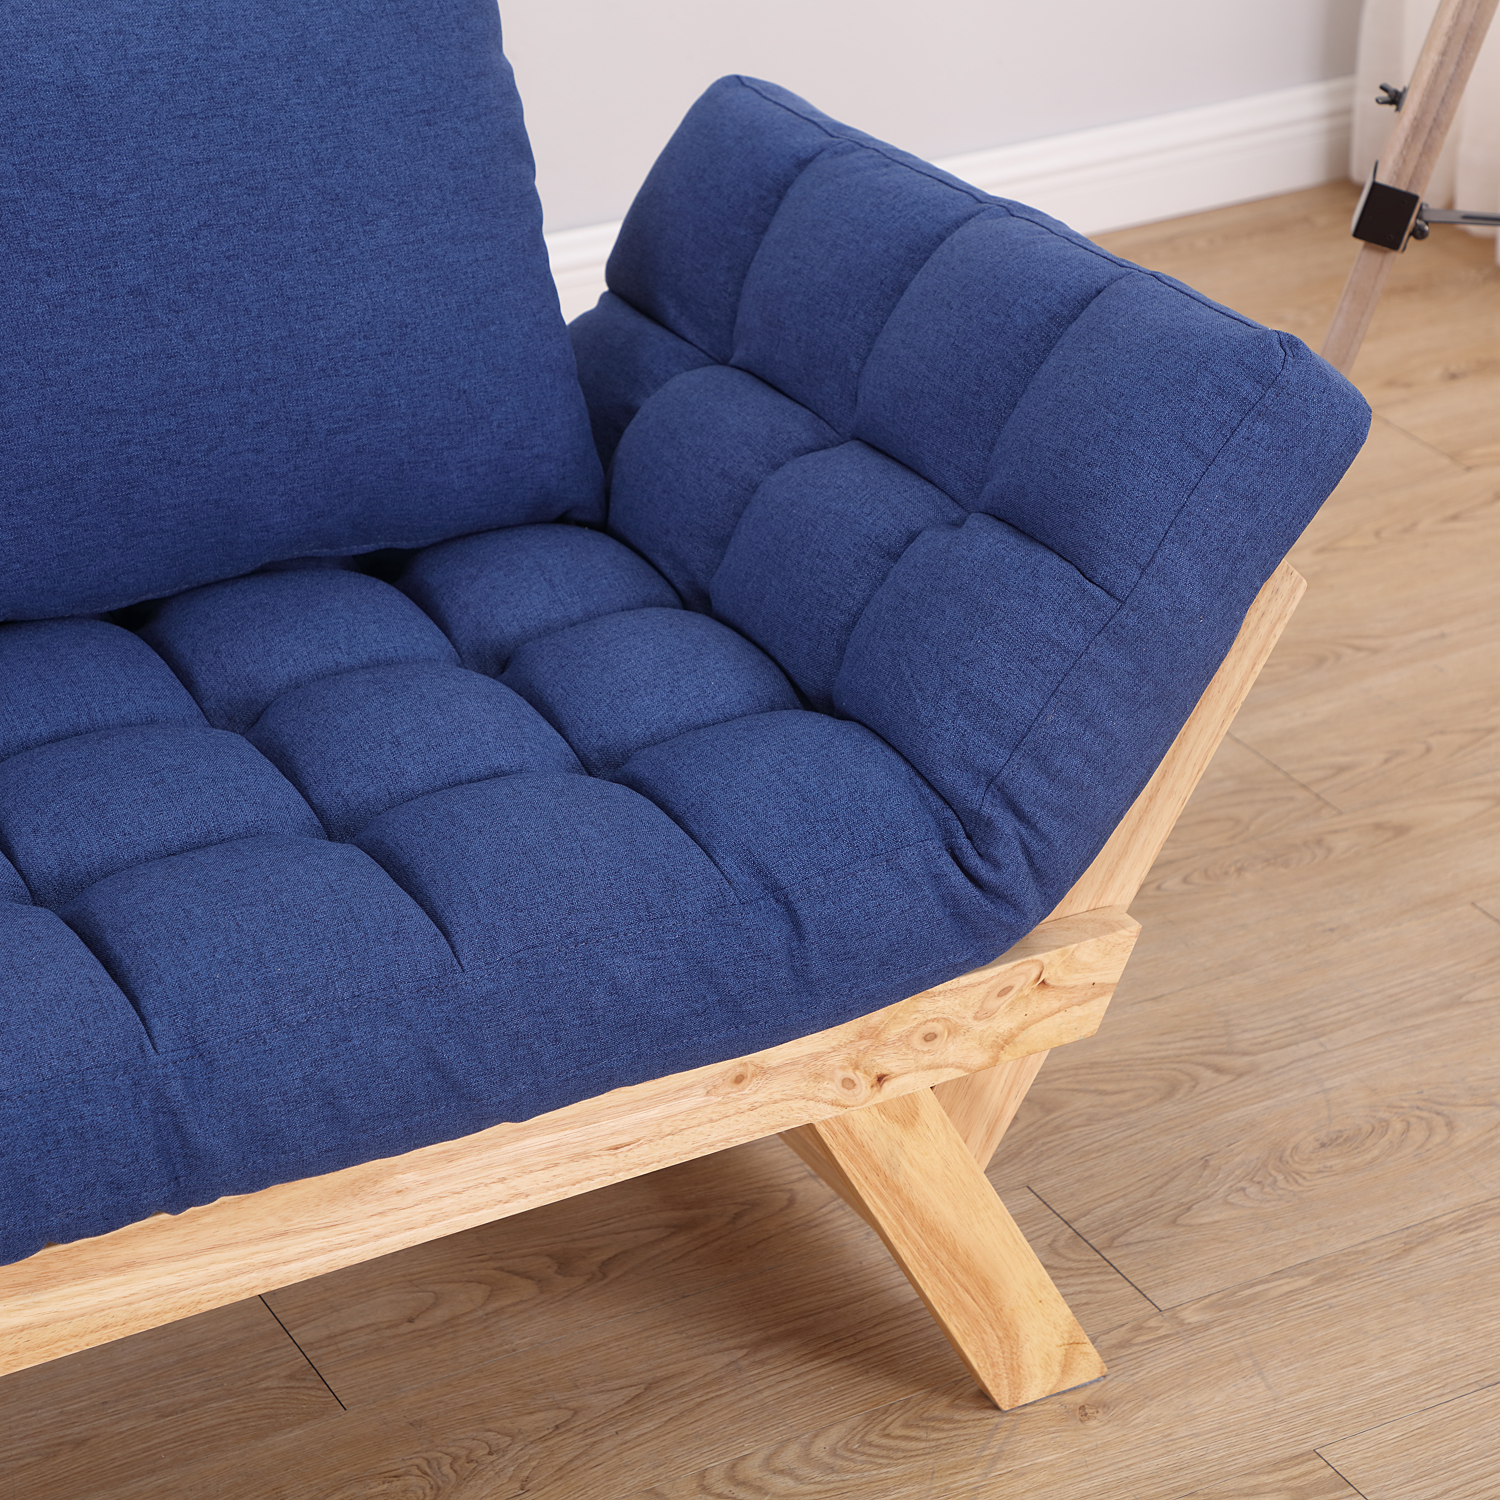 Convertible-Sofa-Bed-Sleeper-Couch-Chaise-Lounge-Chair-Adjustable-Padded-Pillow thumbnail 53